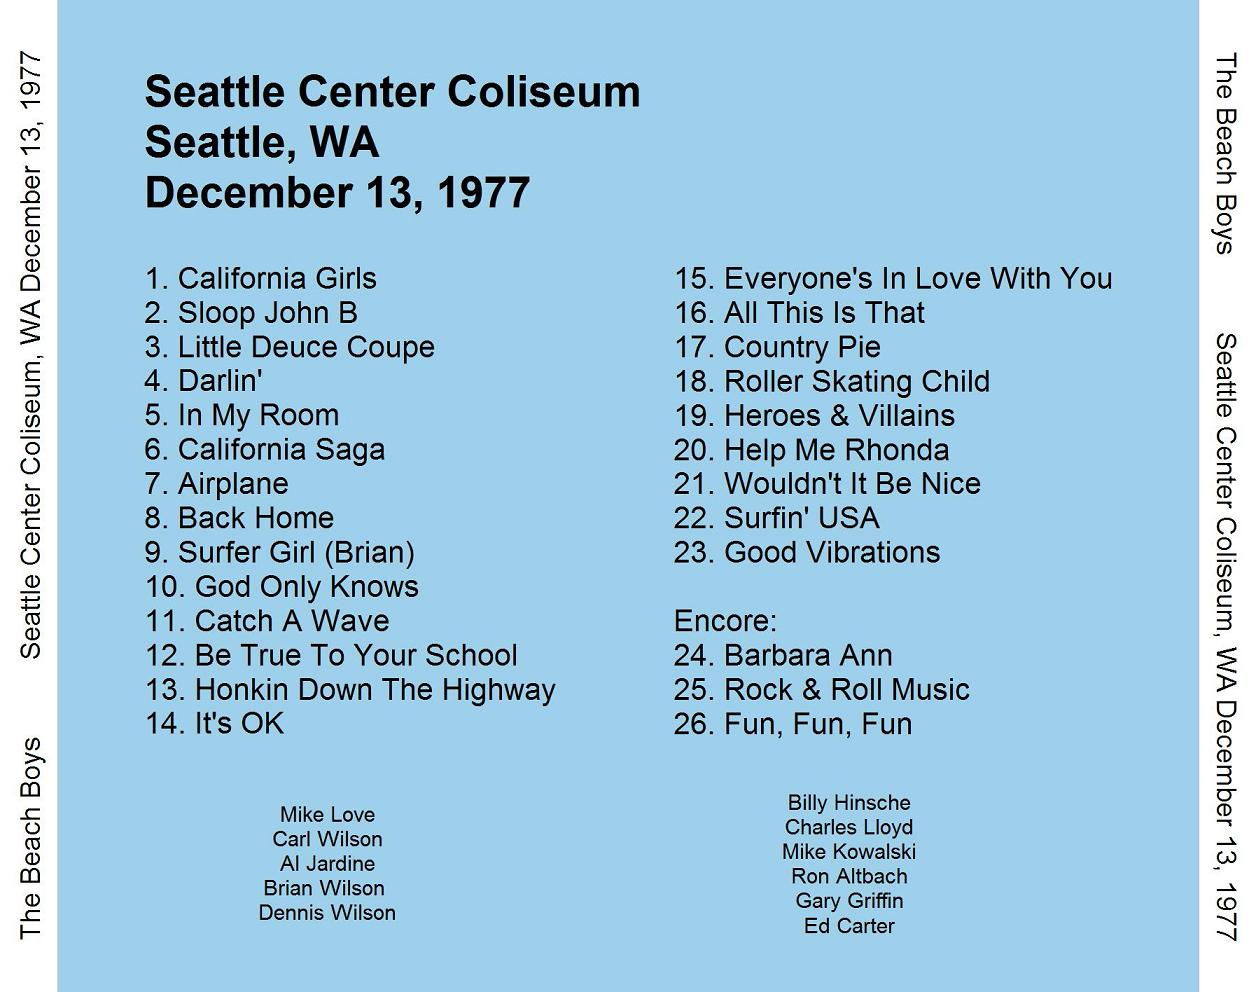 1977-12-13-SEATTLE_CENTER_COLISEUM-back